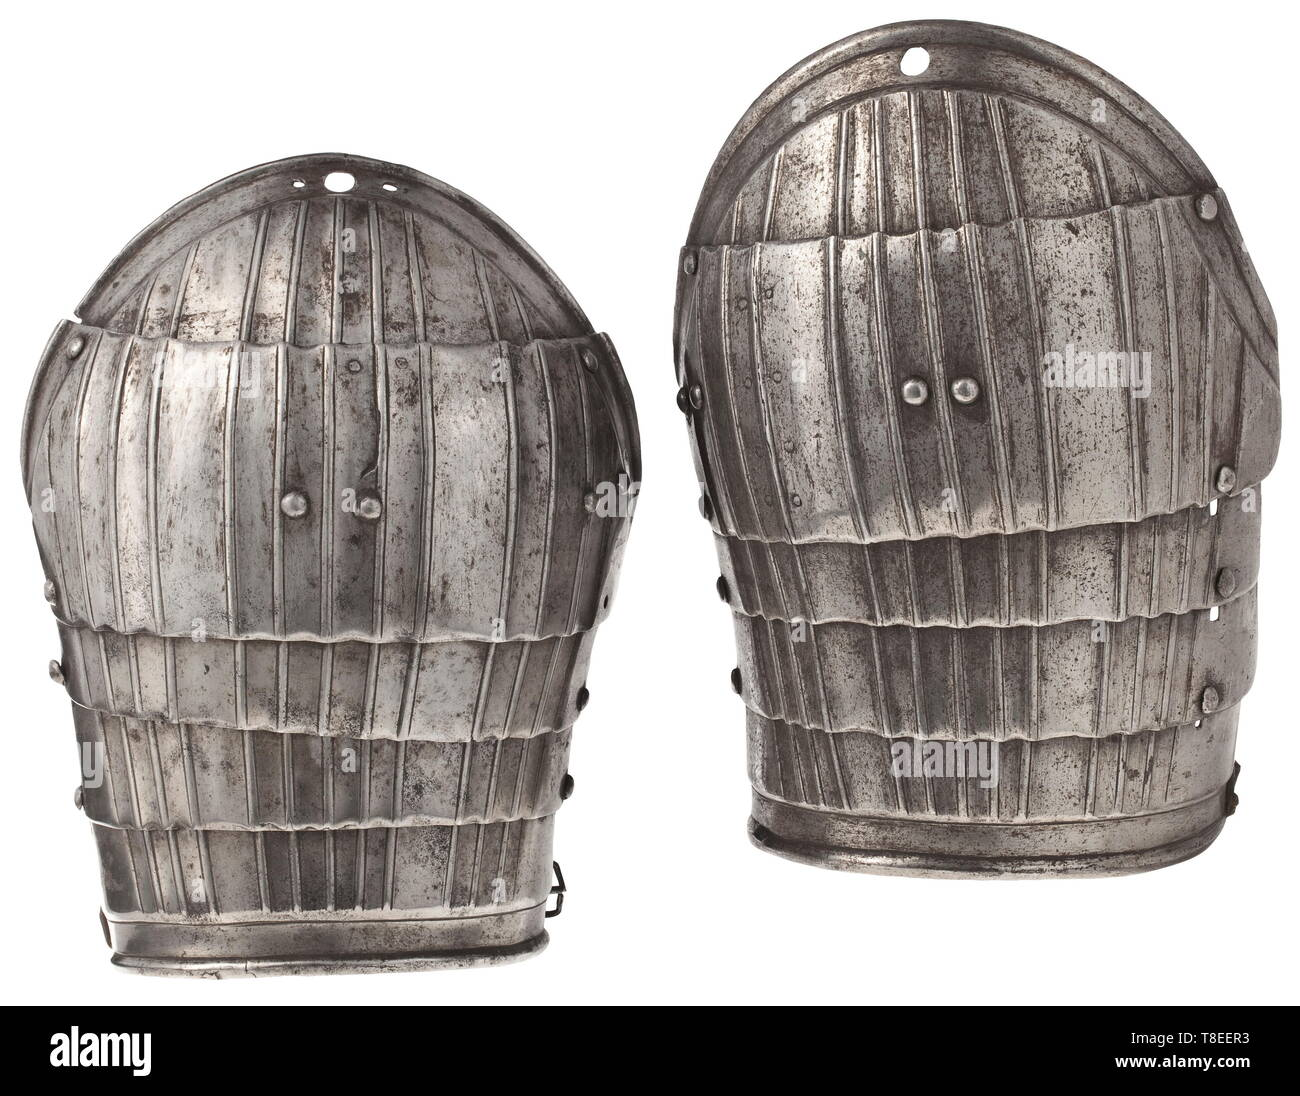 Two German fluted light spaulders for a 'Maximilian' armour with minor differences, circa 1520-25. Gutter-shaped, each of five lames embossed with a central band of four flutes flanked by two bands of three flutes and all widening slightly over the two middle lames, the upper and the lower lames with recessed borders with plain angular turned edges, and each moving on later sliding rivets and internal leathers (one lower lame replaced to match). Length 22.5cm. historic, historical, weapons, arms, weapon, arm, baronial, military, militaria, rapier, Additional-Rights-Clearance-Info-Not-Available - Stock Image